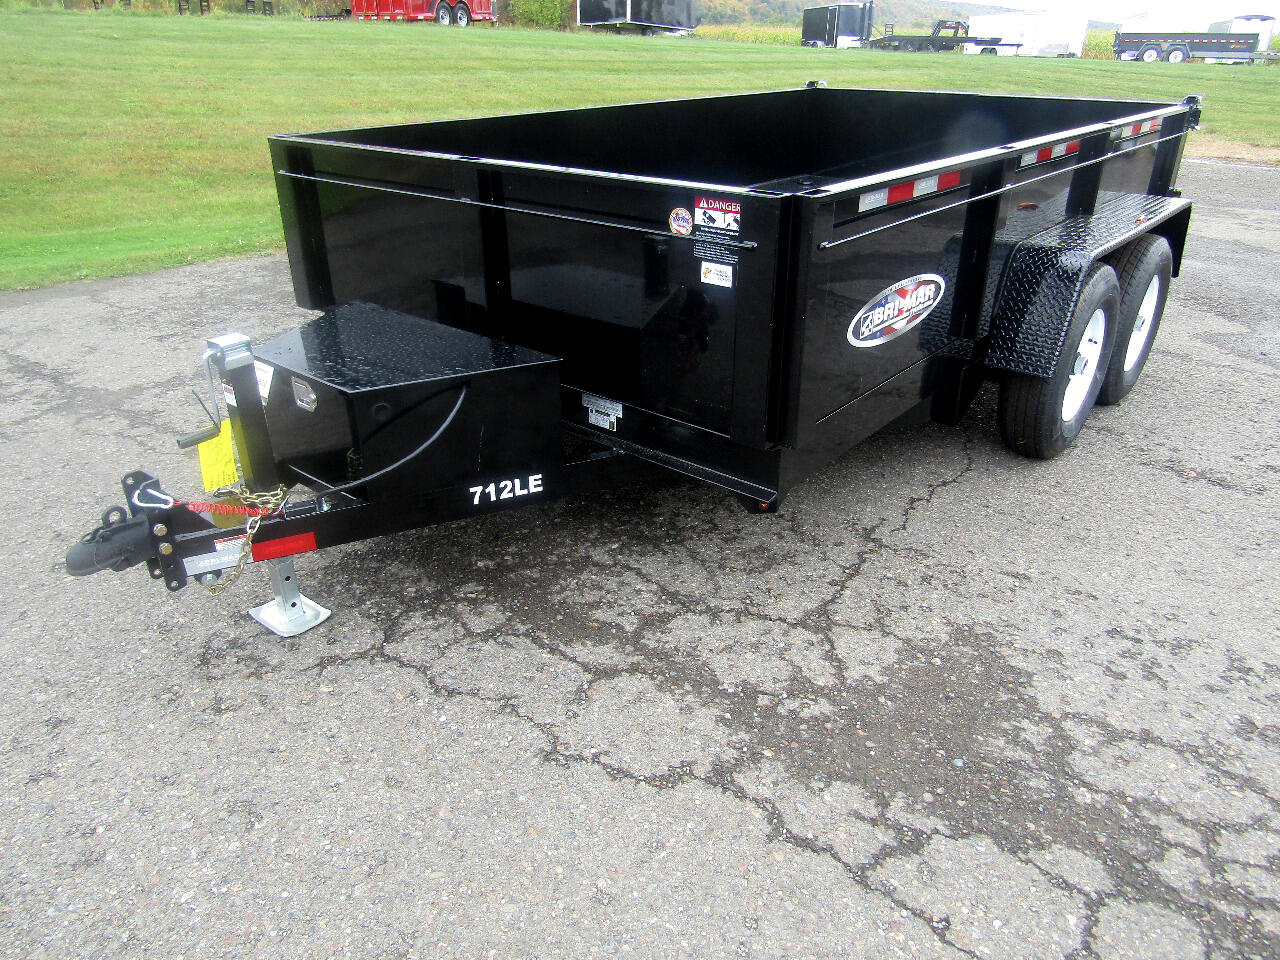 2020 Bri-Mar Low Profile Dump Trailer DT712LP-LE 7X12 DUMP WITH RAMPS    12K